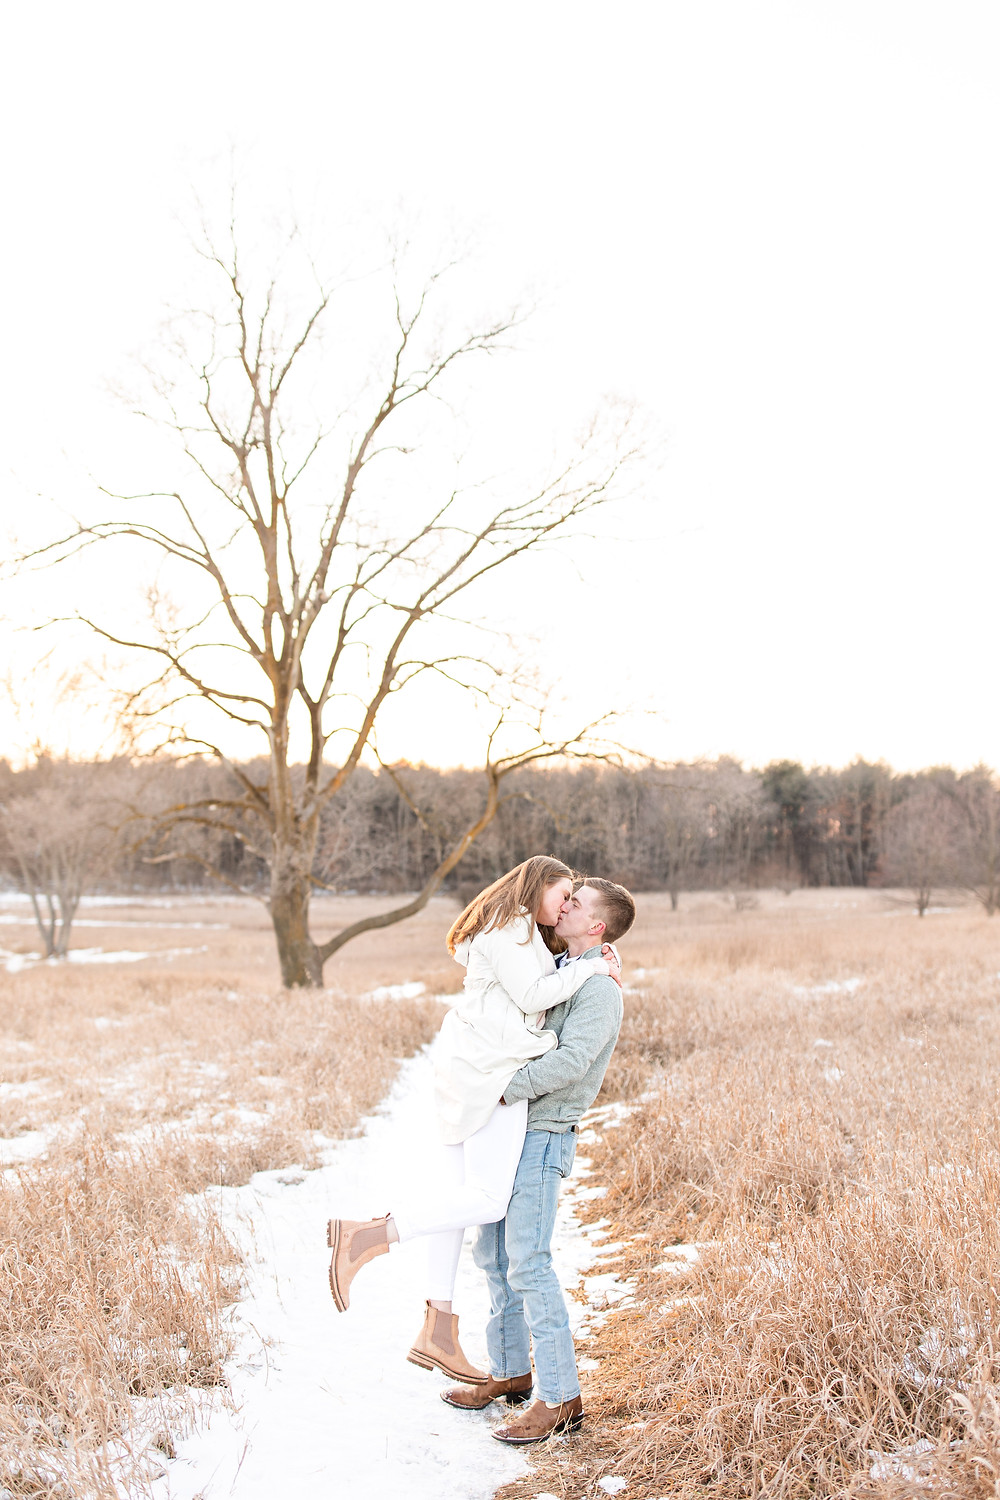 Josh and Andrea wedding photography husband and wife team michigan engagement session Al sabo land preserve couple lifting kissing in snowy field